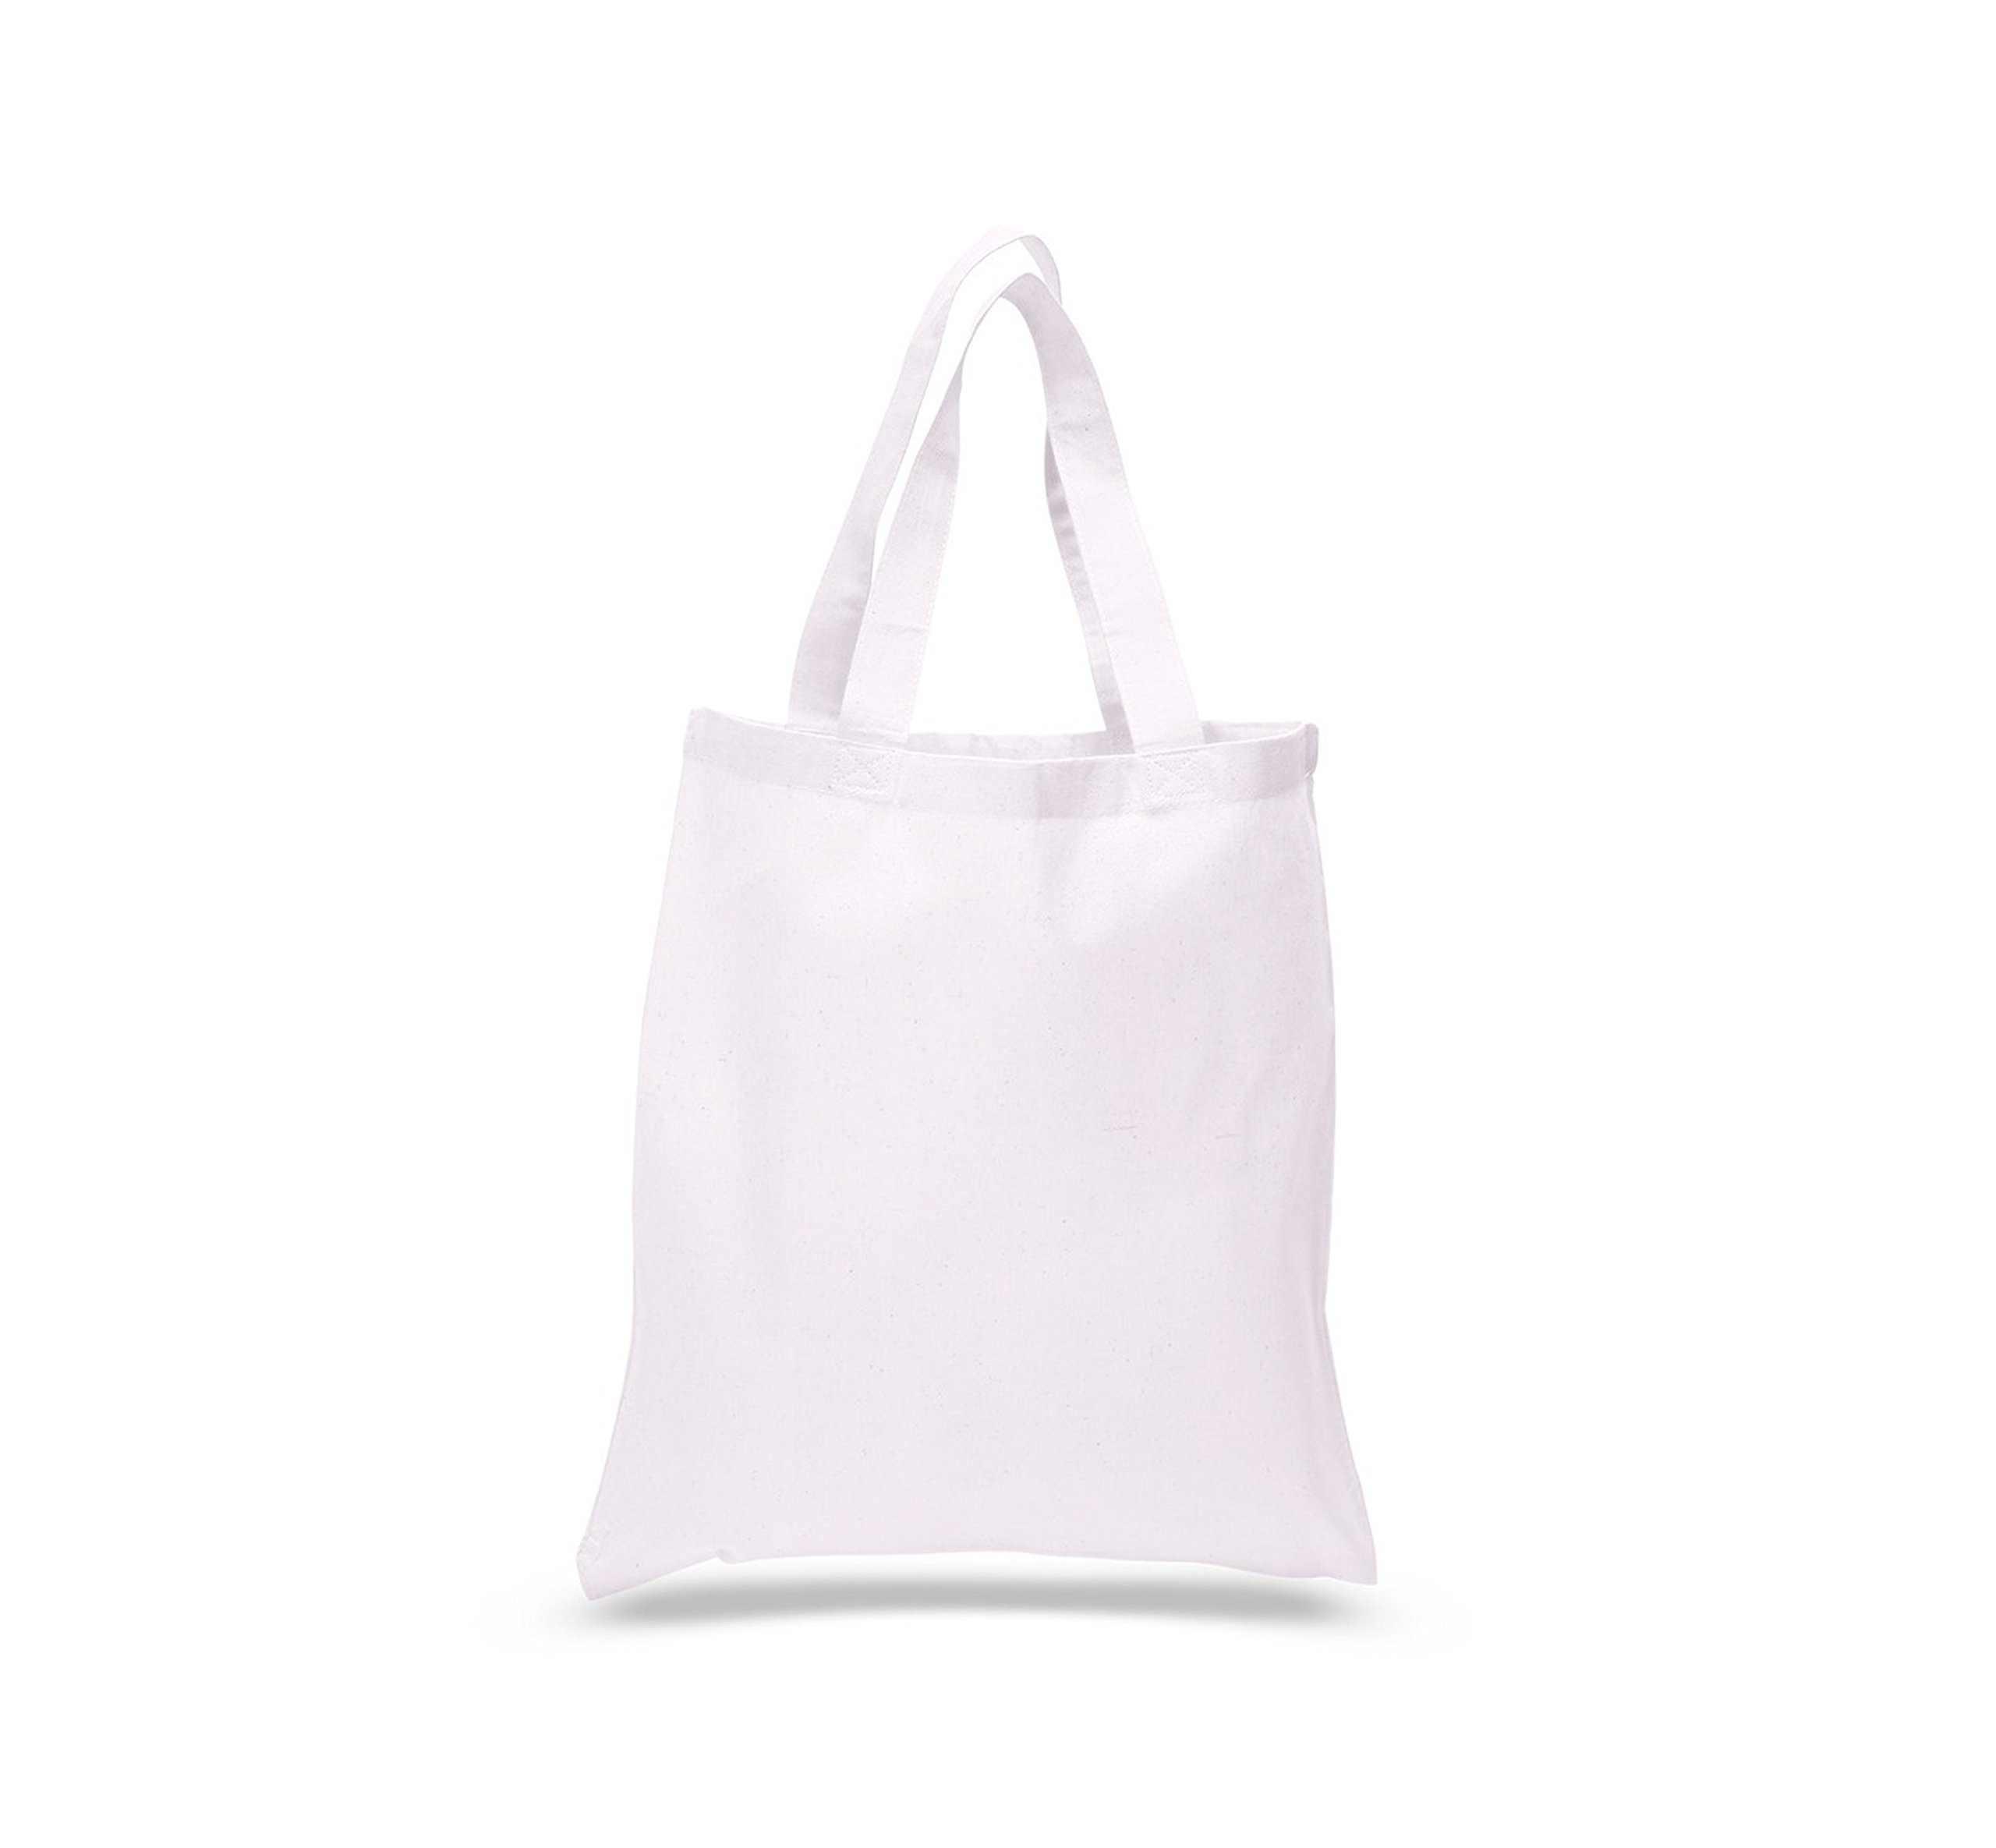 Cheap Cotton Tote Bags Find Cotton Tote Bags Deals On Line At